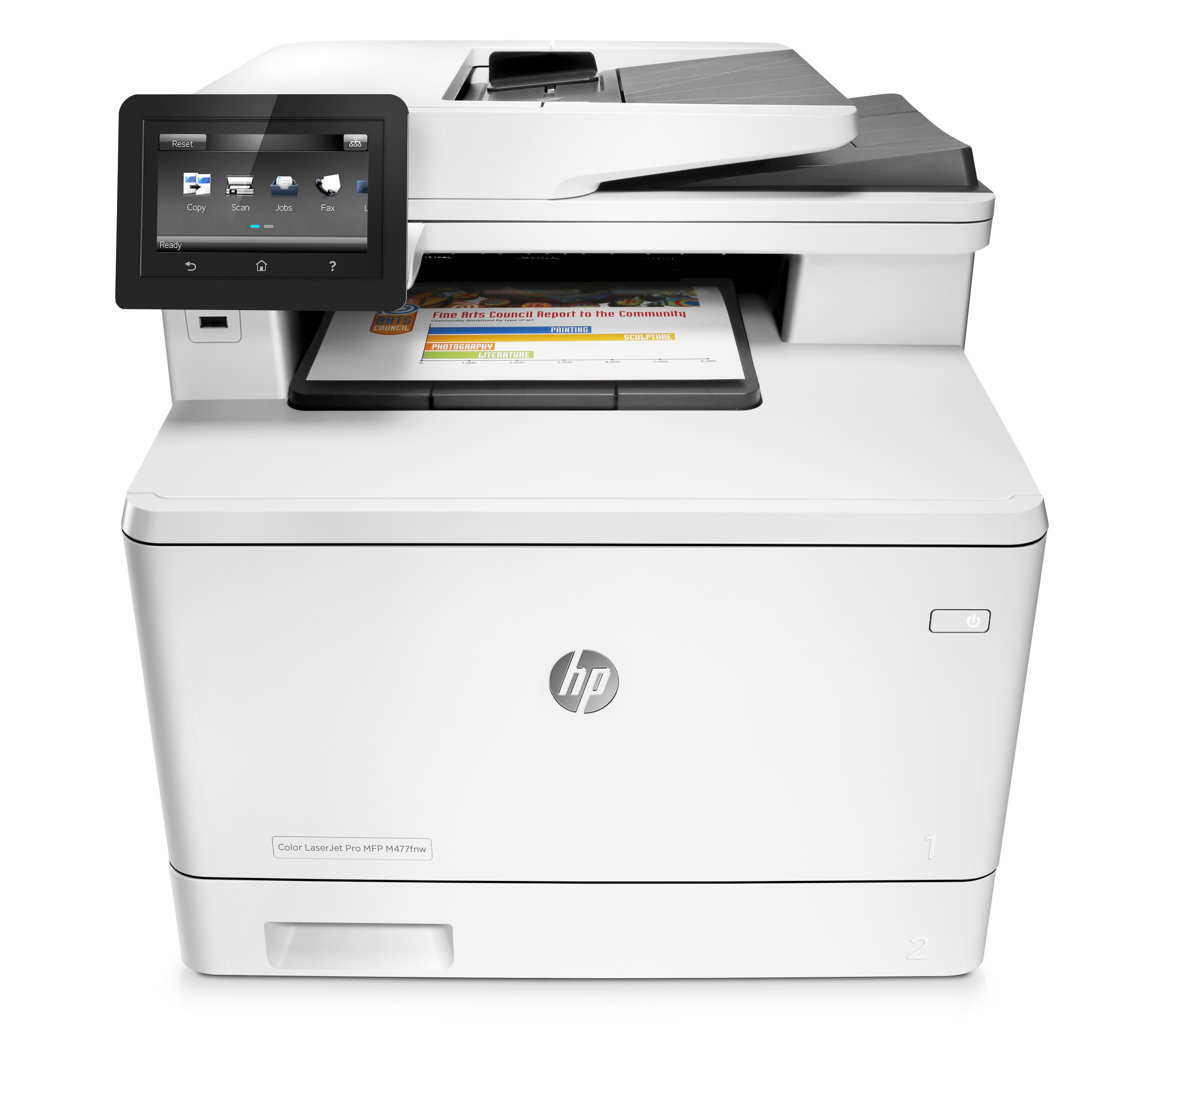 Color printing office depot - Hp Laserjet Pro M477fnw Wireless Color Laser Printer With Jetintelligence By Office Depot Officemax